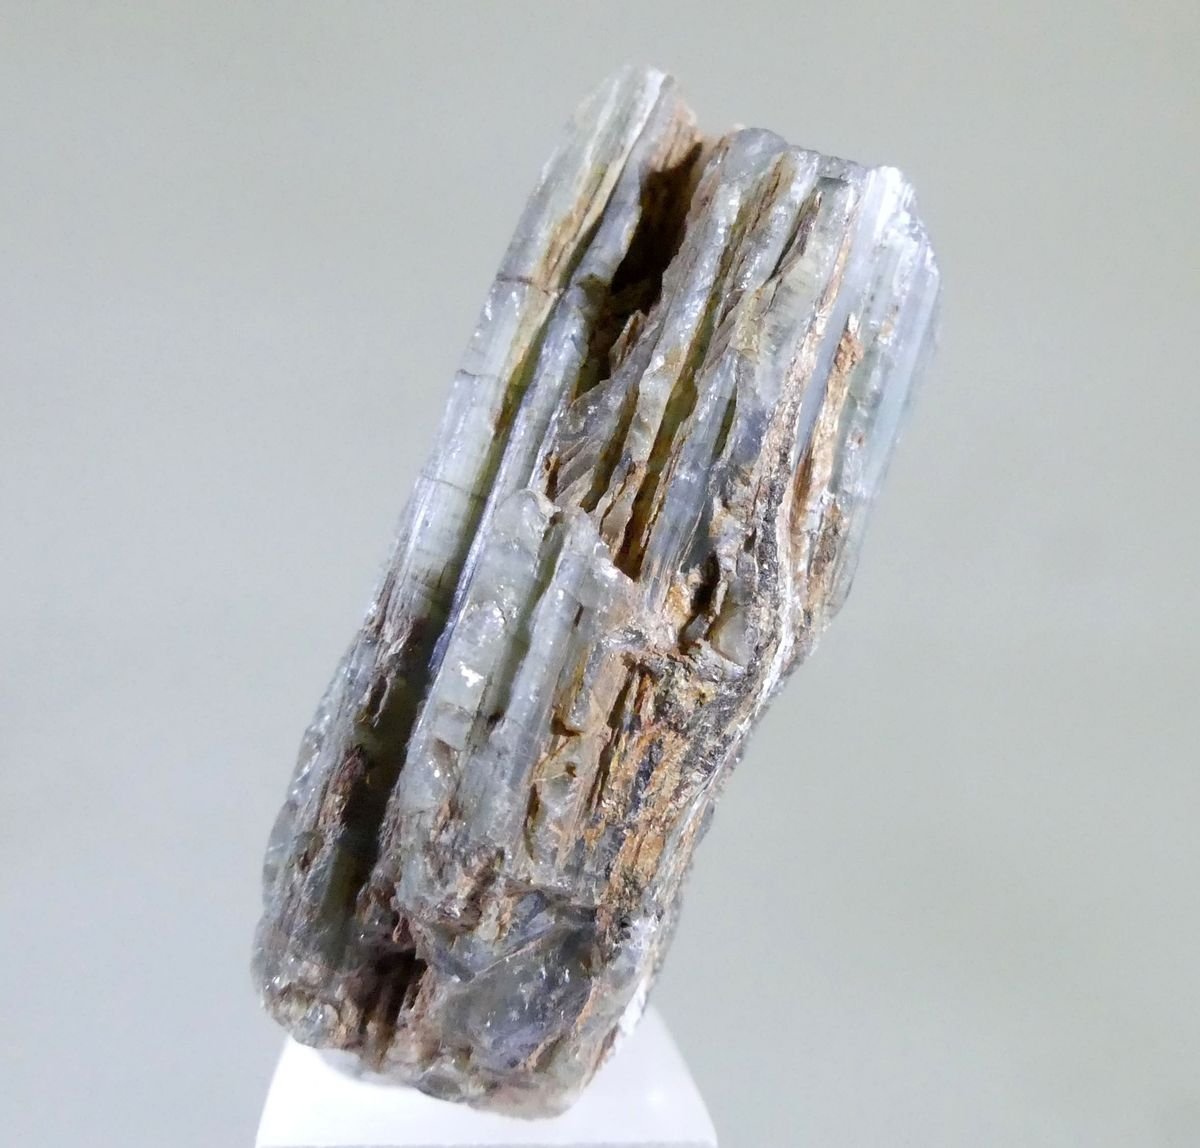 Quartz With Hornblende